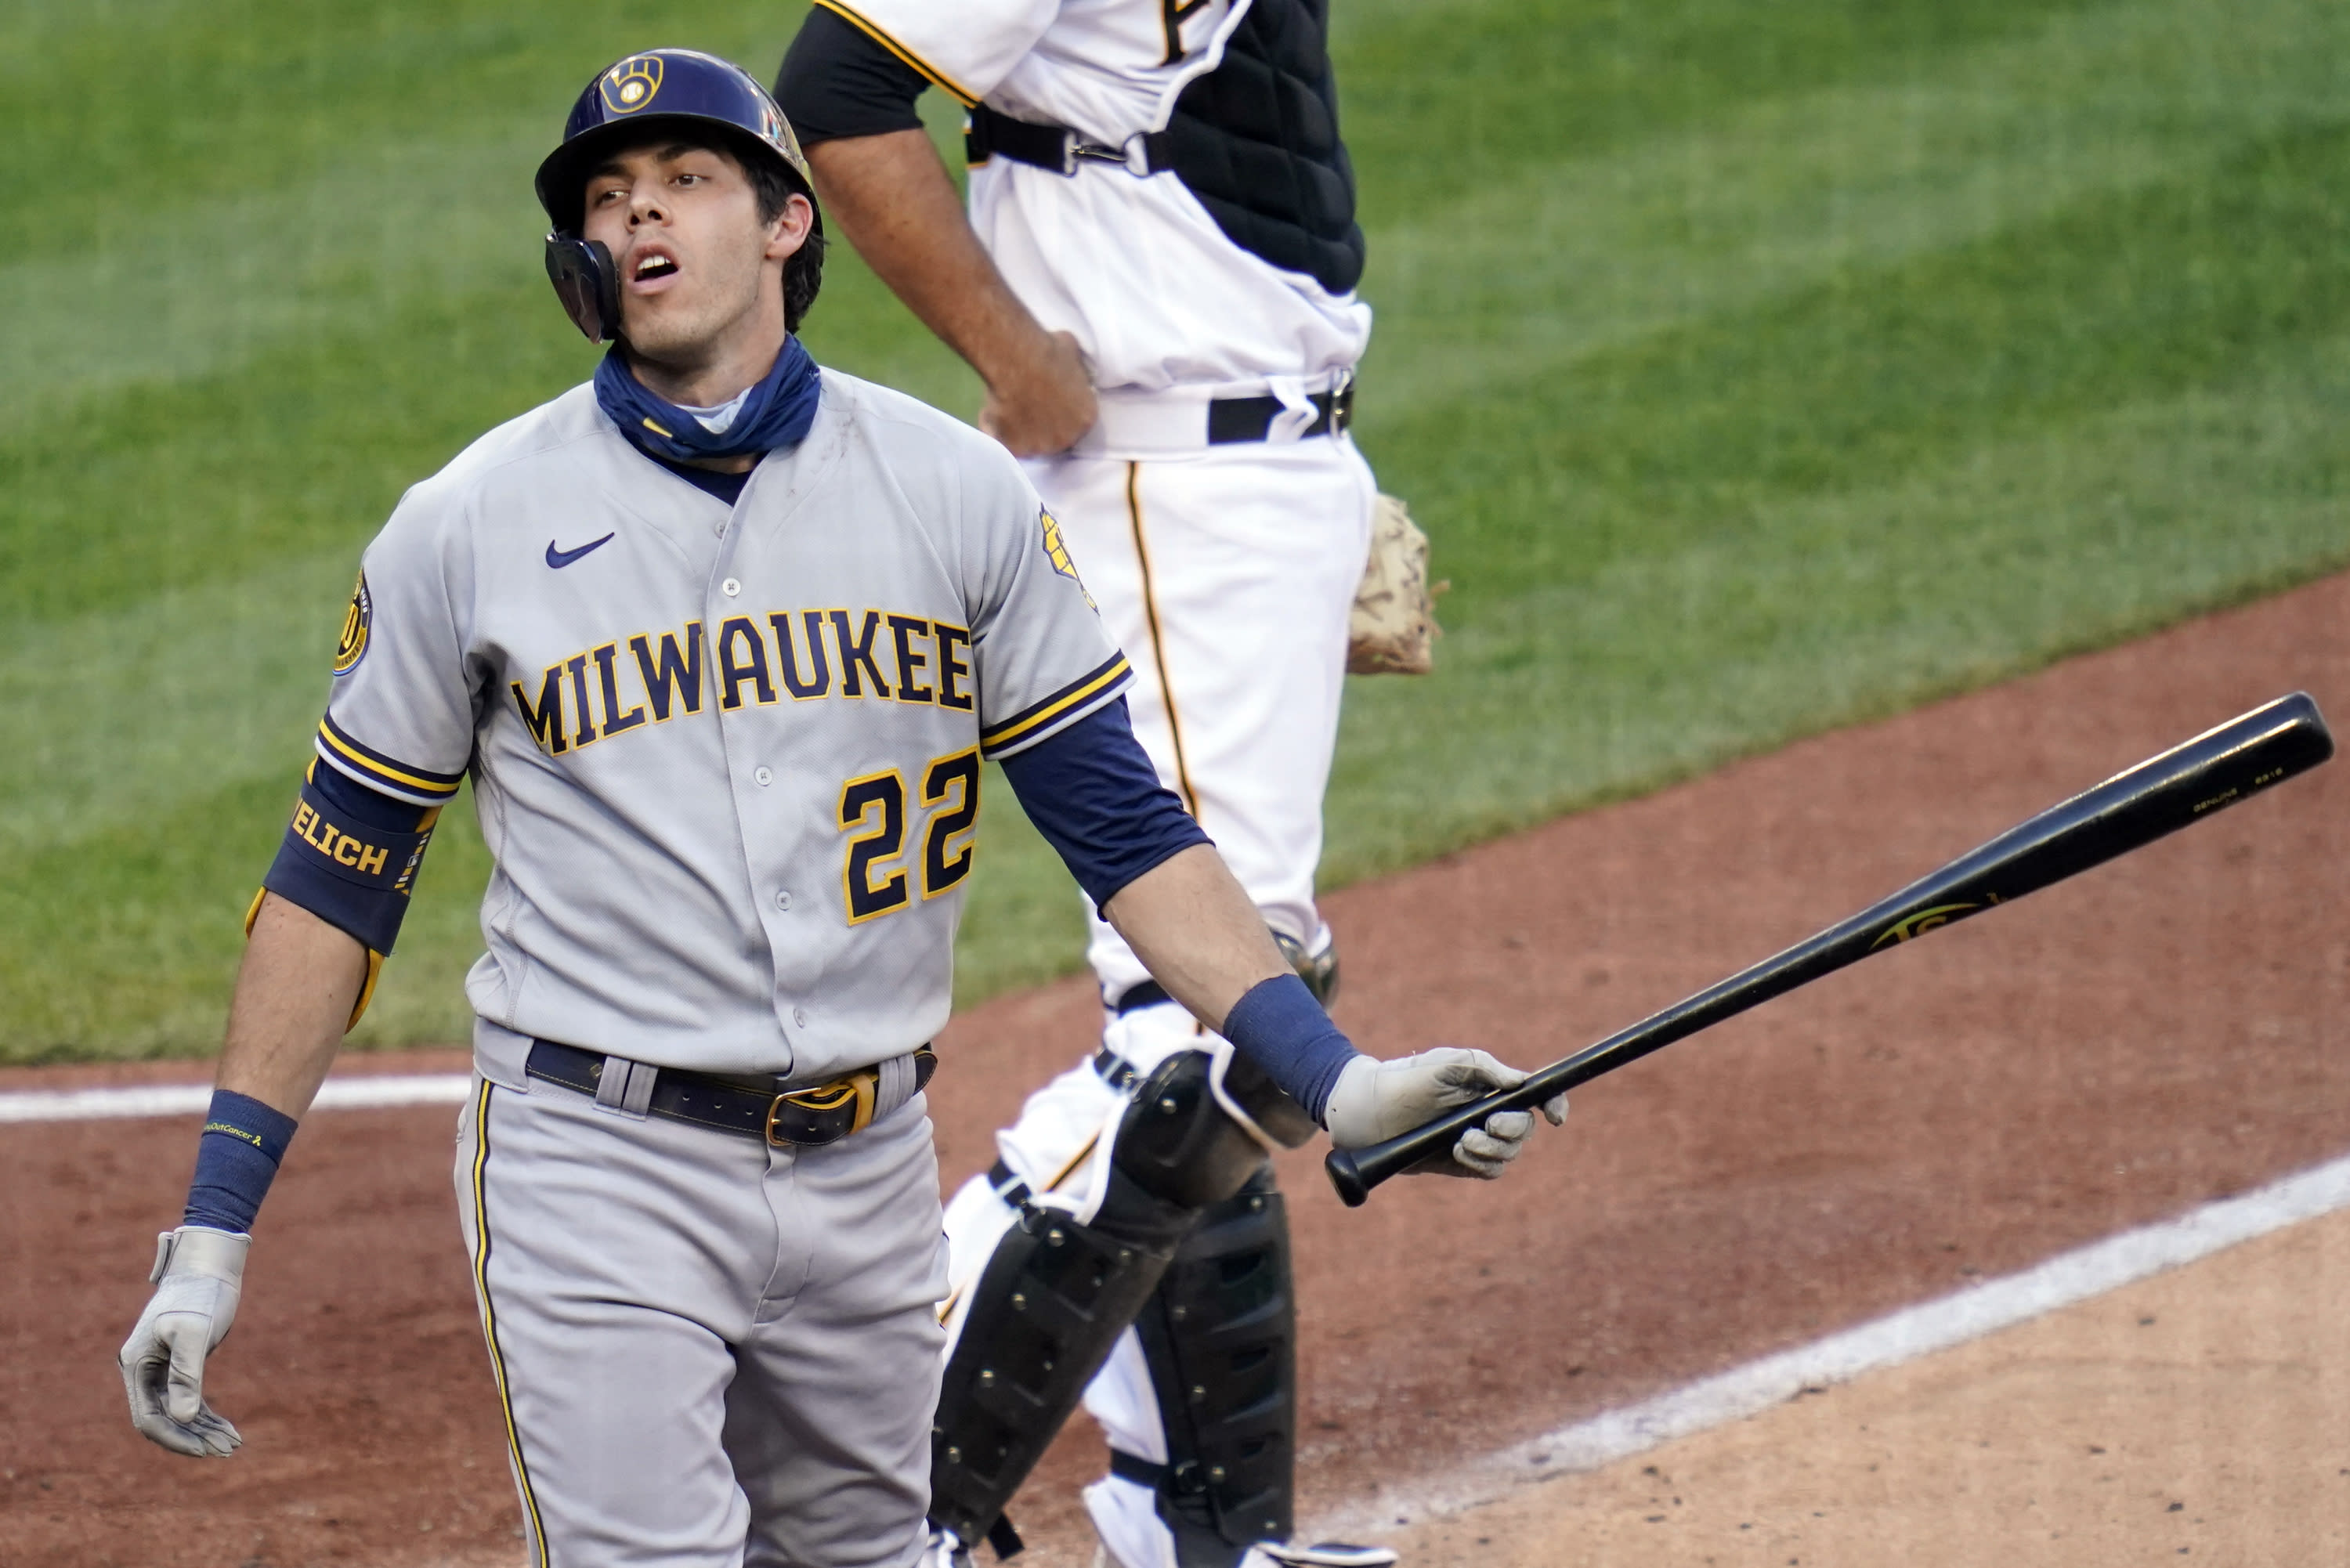 Milwaukee Brewers' Christian Yelich (22) reacts after striking out against the Pittsburgh Pirates in the fifth inning of a baseball game, Saturday, Aug. 22, 2020, in Pittsburgh. (AP Photo/Keith Srakocic)